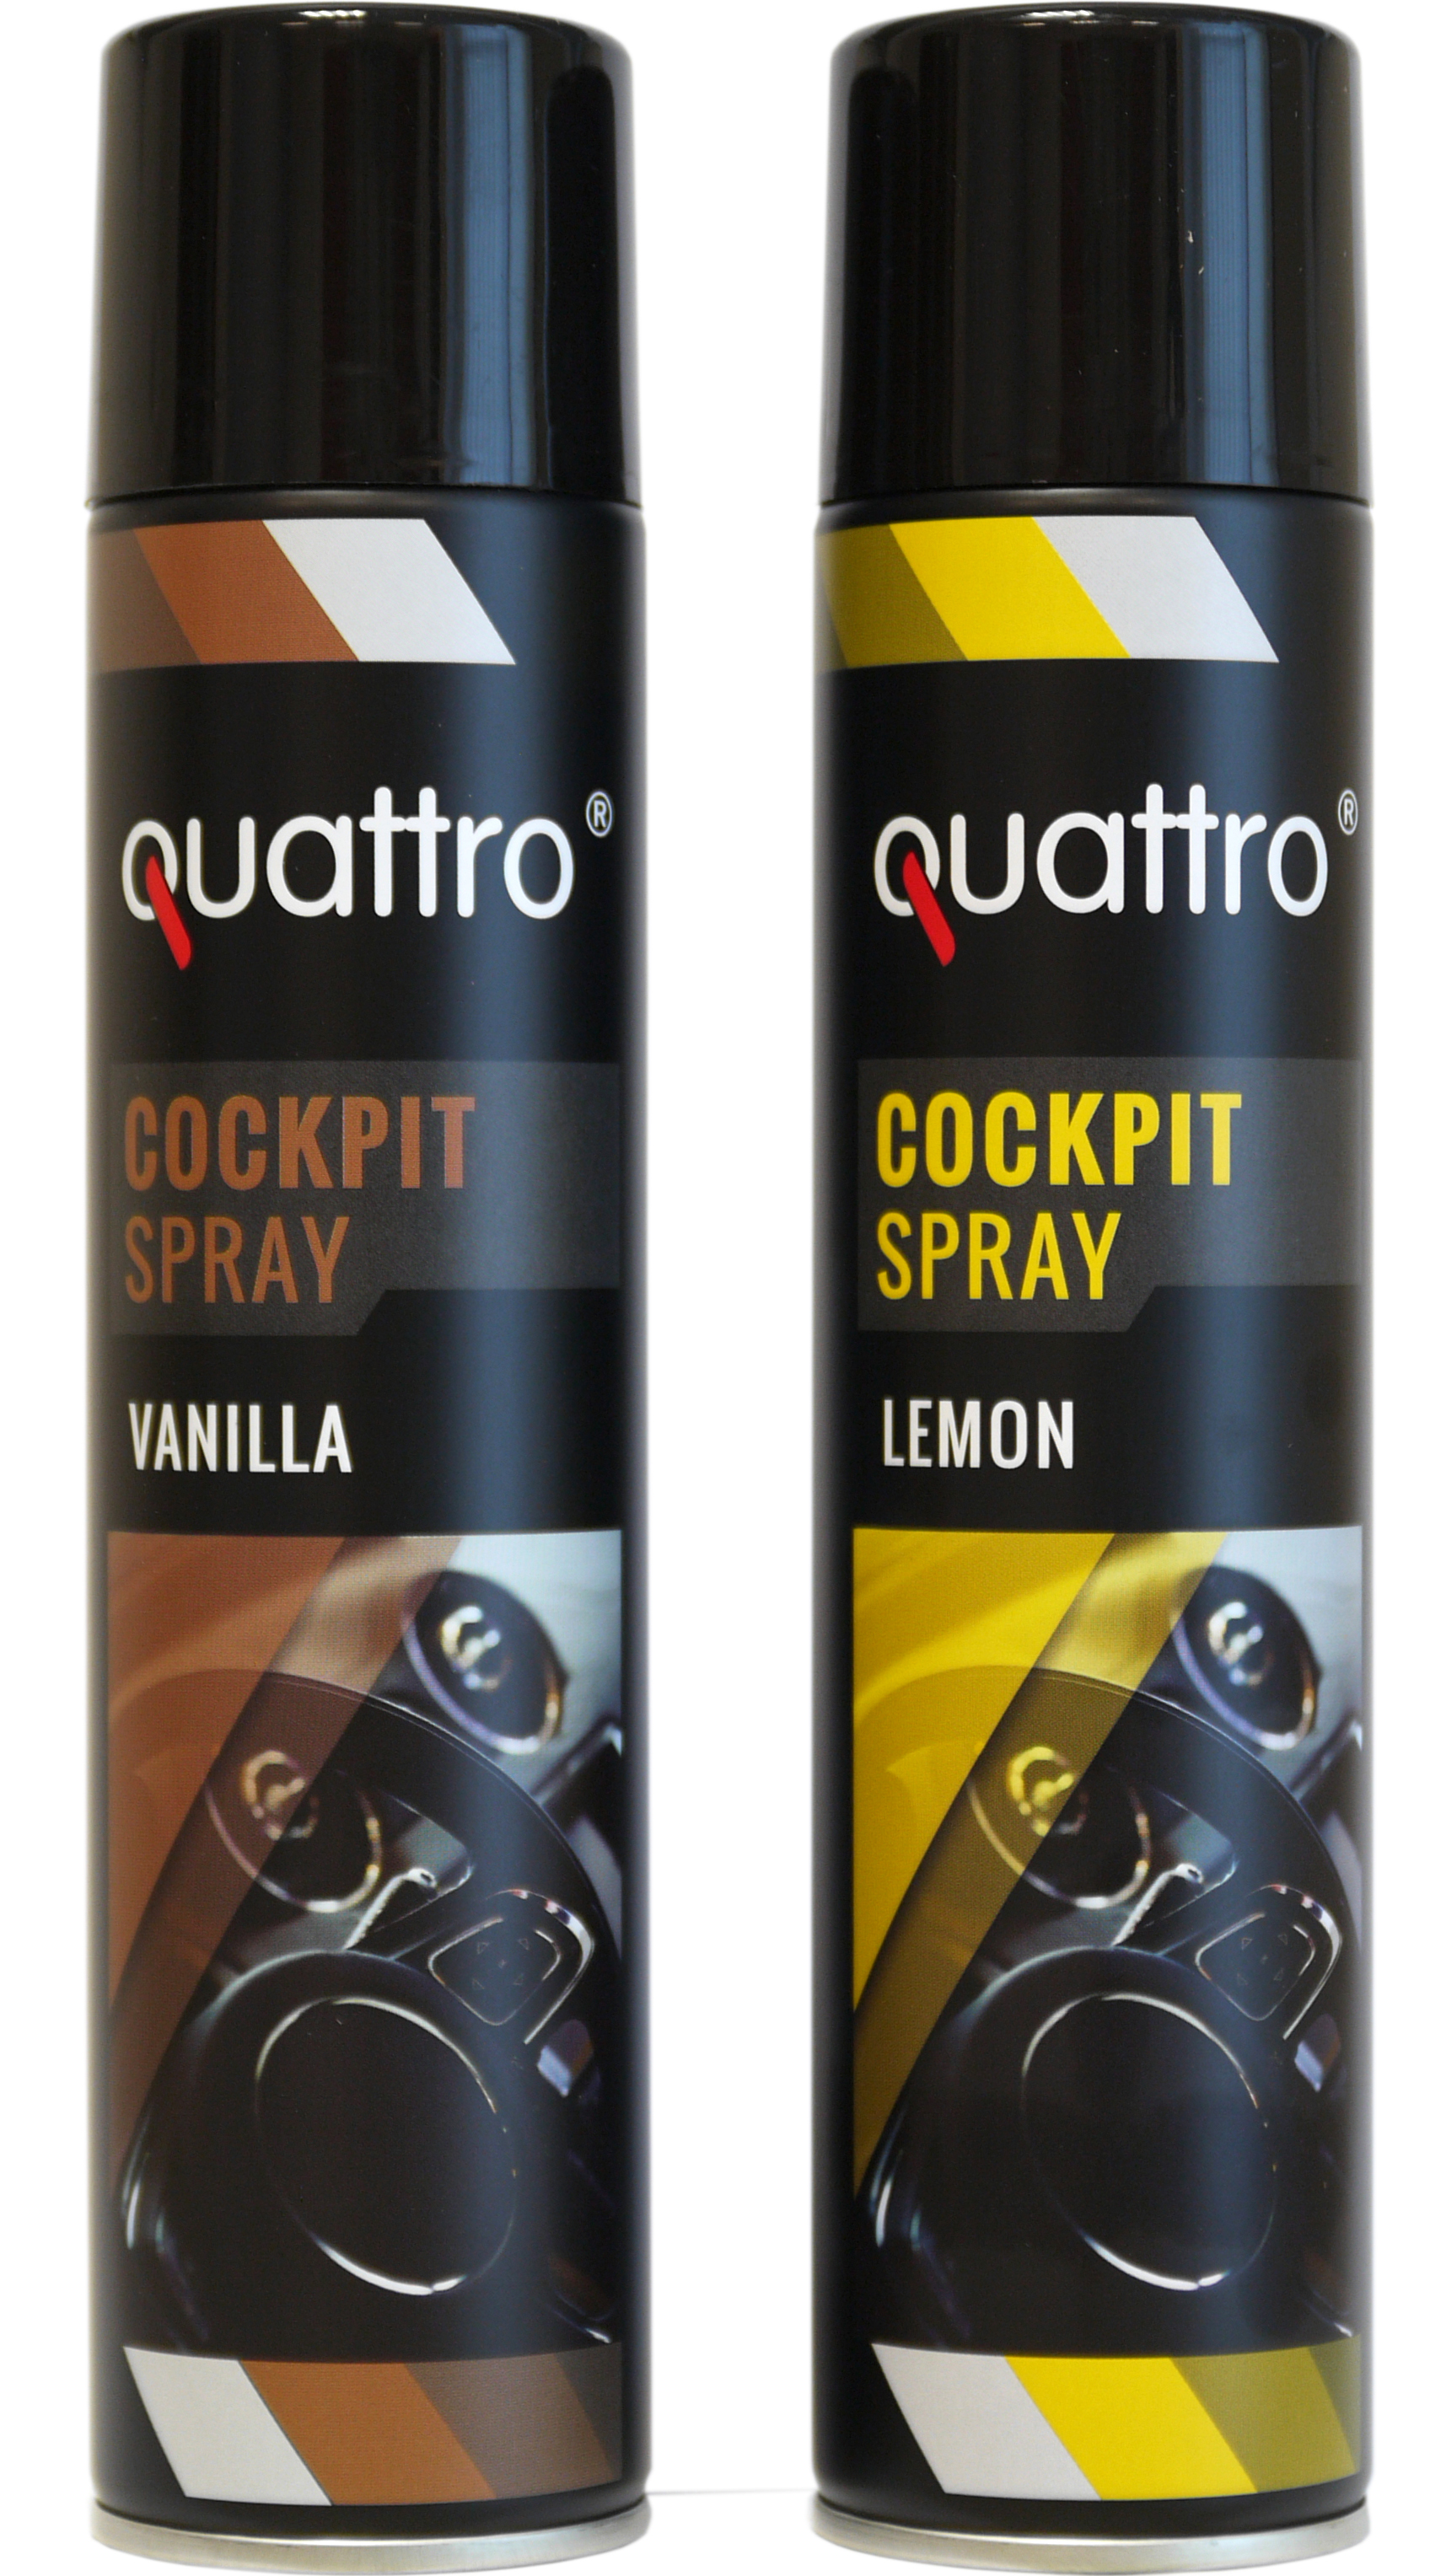 00719 - quattro Cockpit Spray 300 ml, 2-fach sortiert: 6x Vanille & 6x Lemon